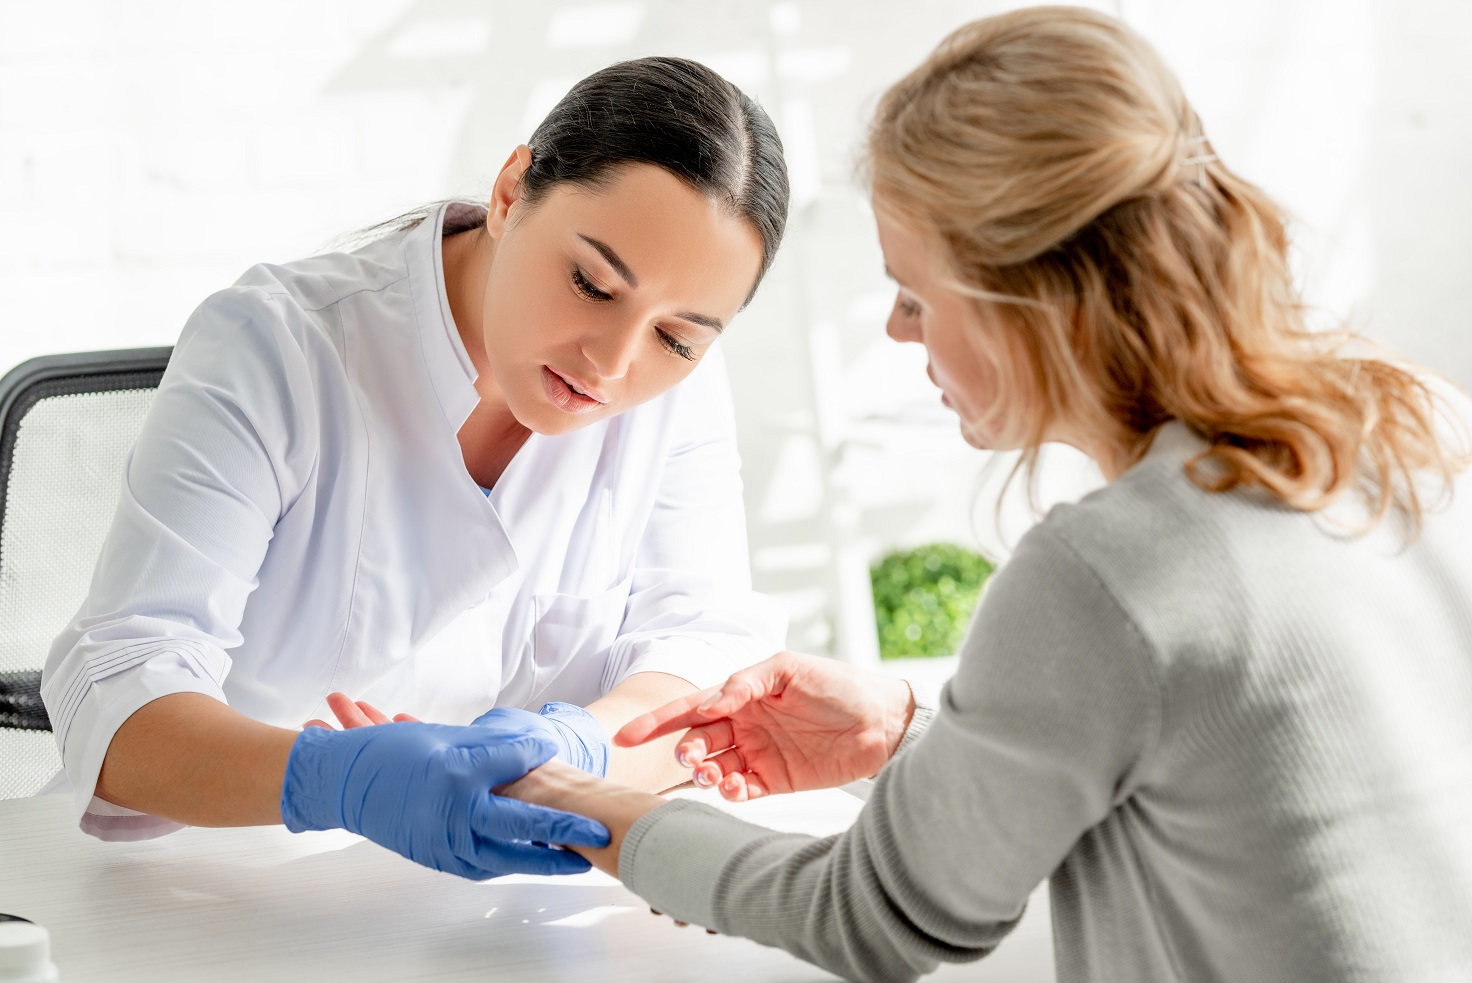 New treatments for Moderate to Severe Atopic Eczema: Biologic therapies